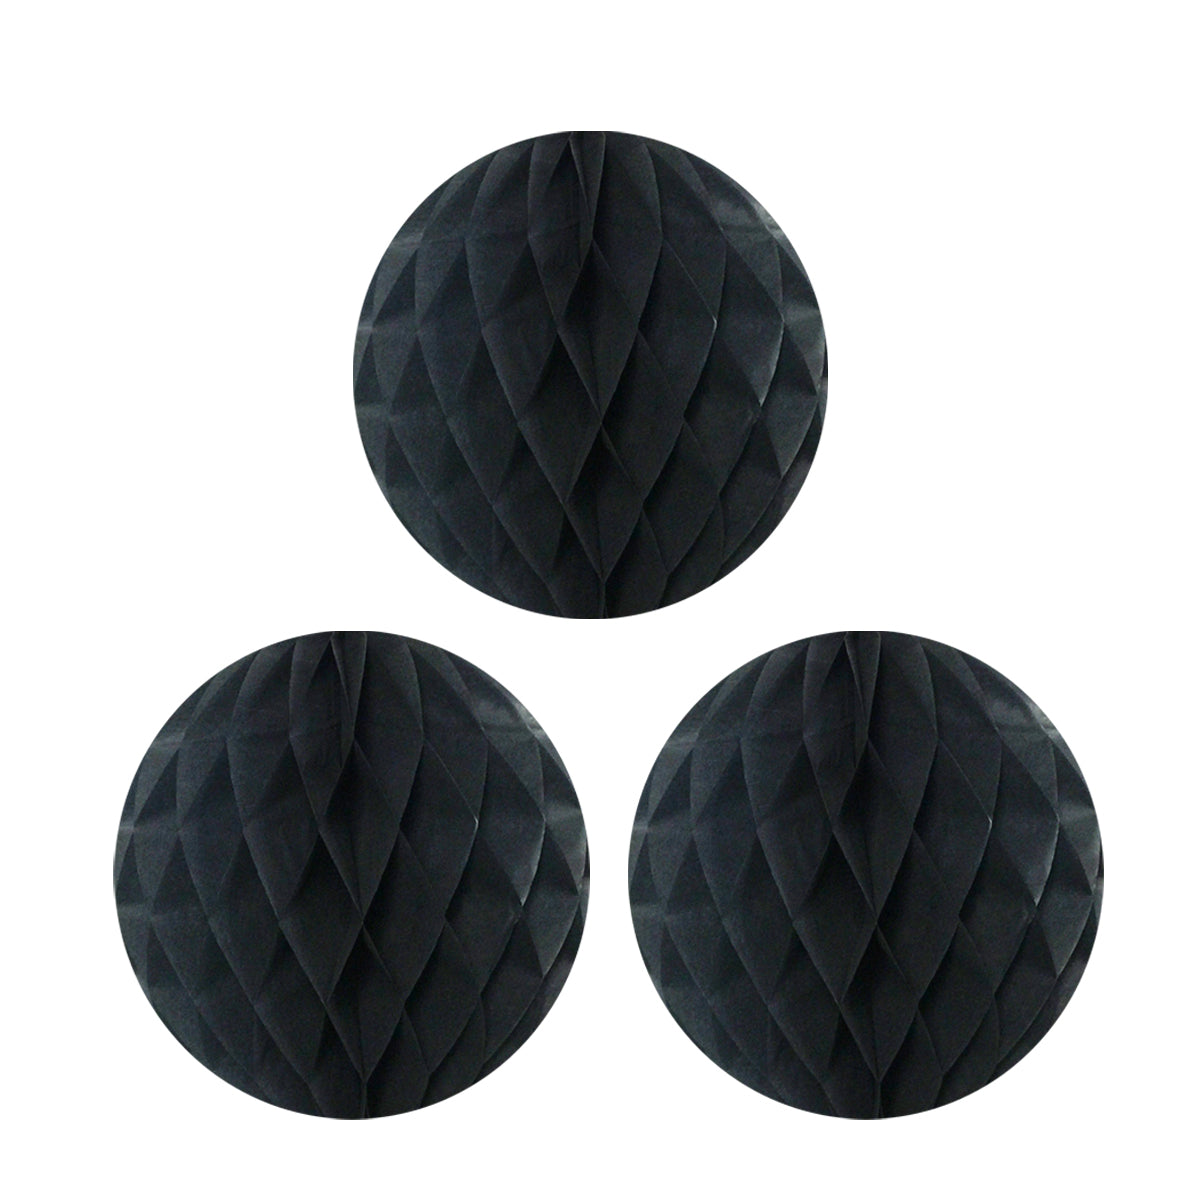 "Wrapables 10"" Set of 3 Tissue Honeycomb Ball Party Decorations"